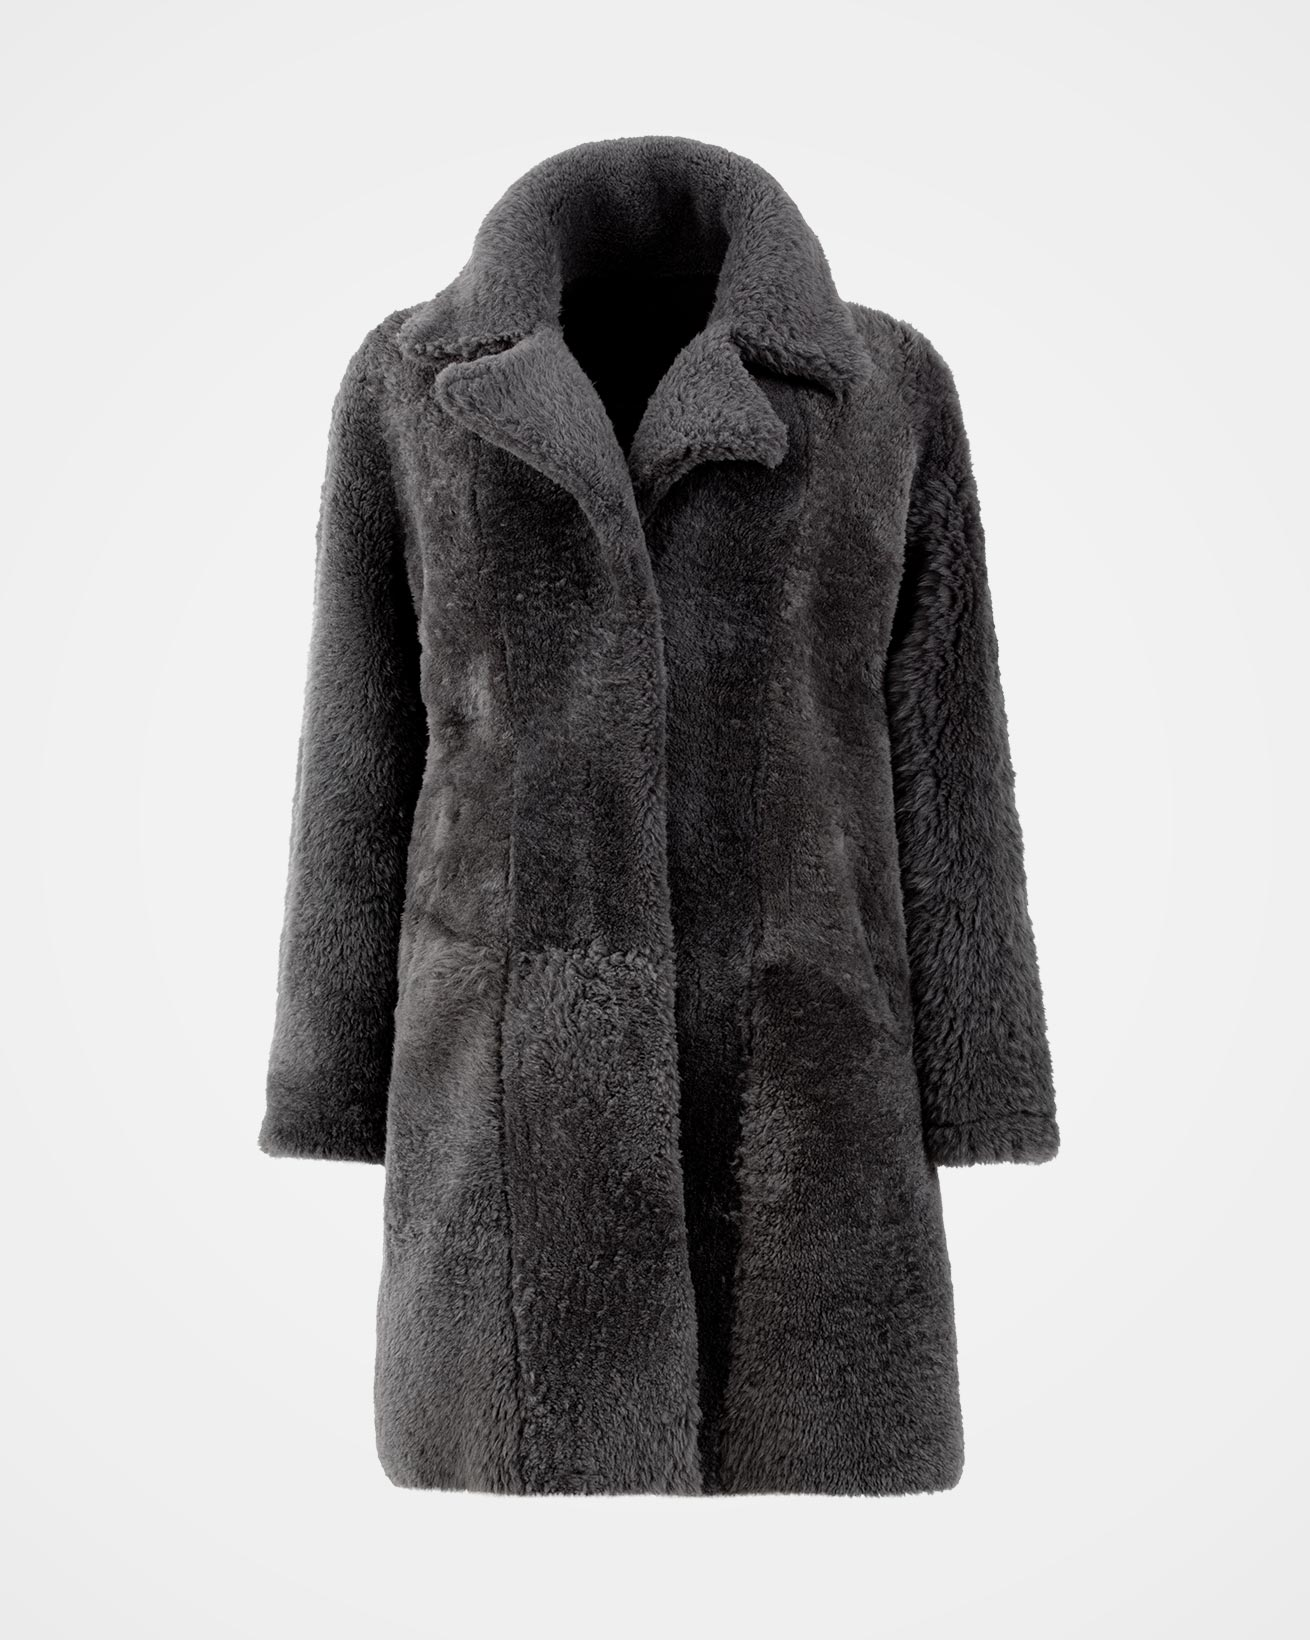 7498_reversible-teddy-coat_otter_front2.jpg